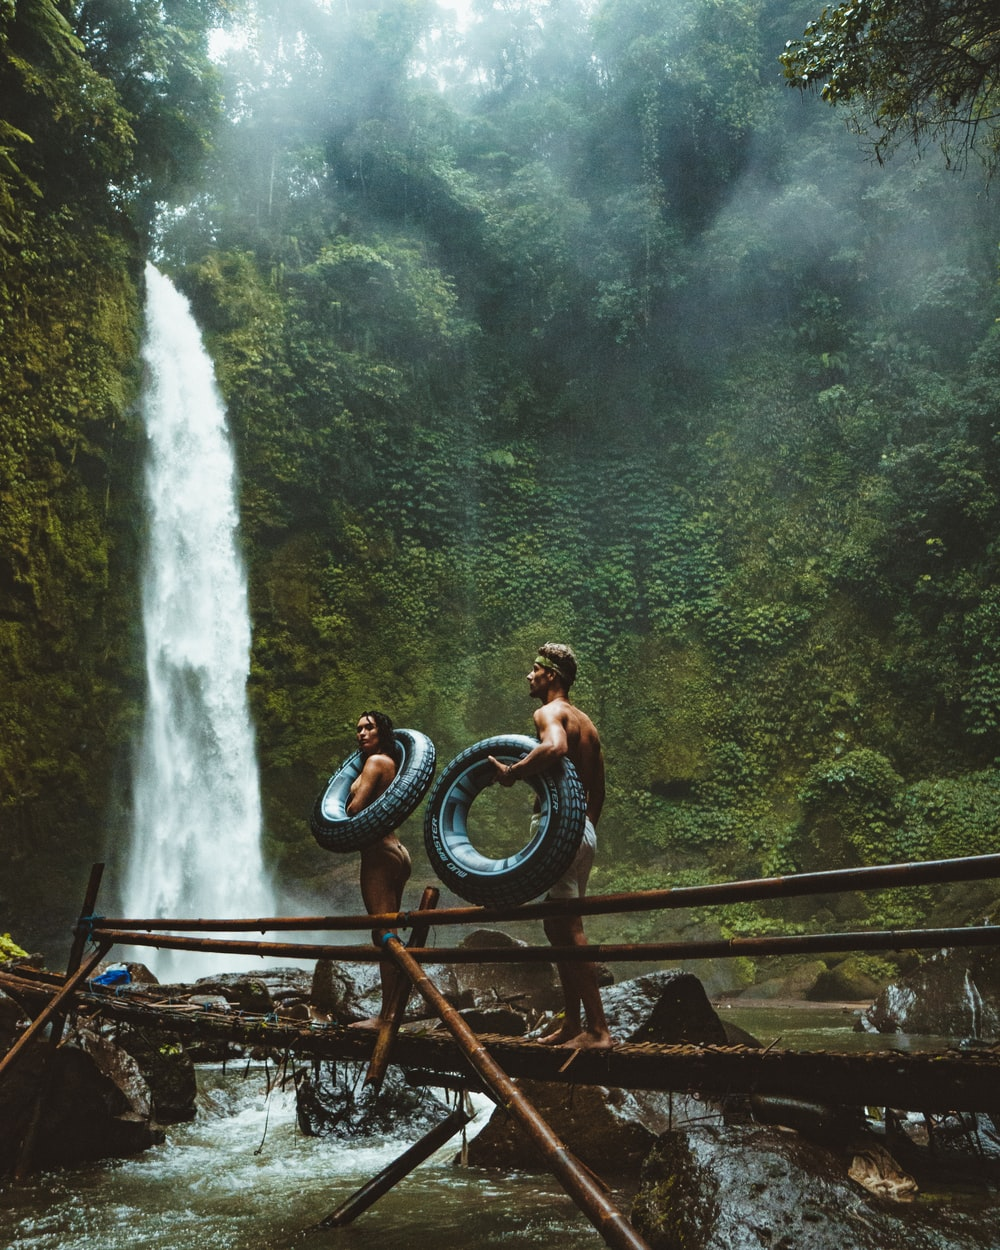 photo of man and woman holding tires and walking on bridge near waterfalls